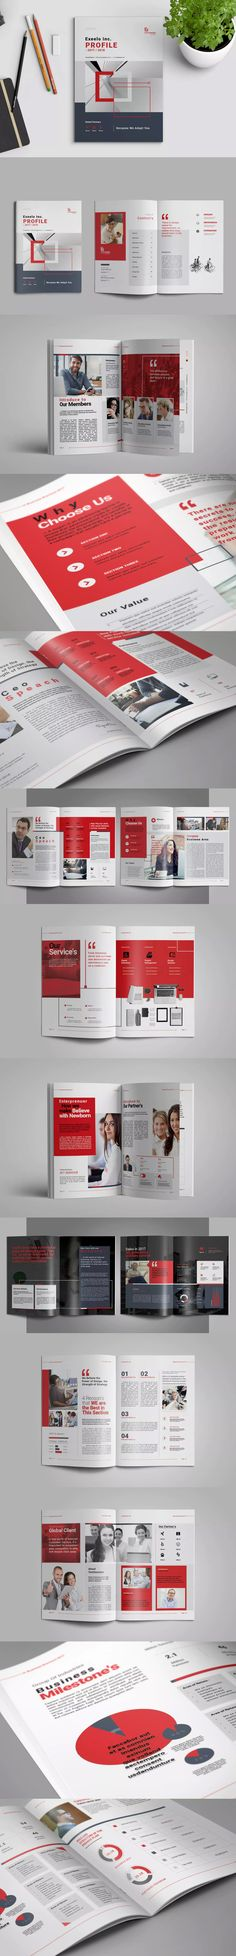 Business Brochure Template InDesign INDD A4 and US Letter - Unlimited Downloads